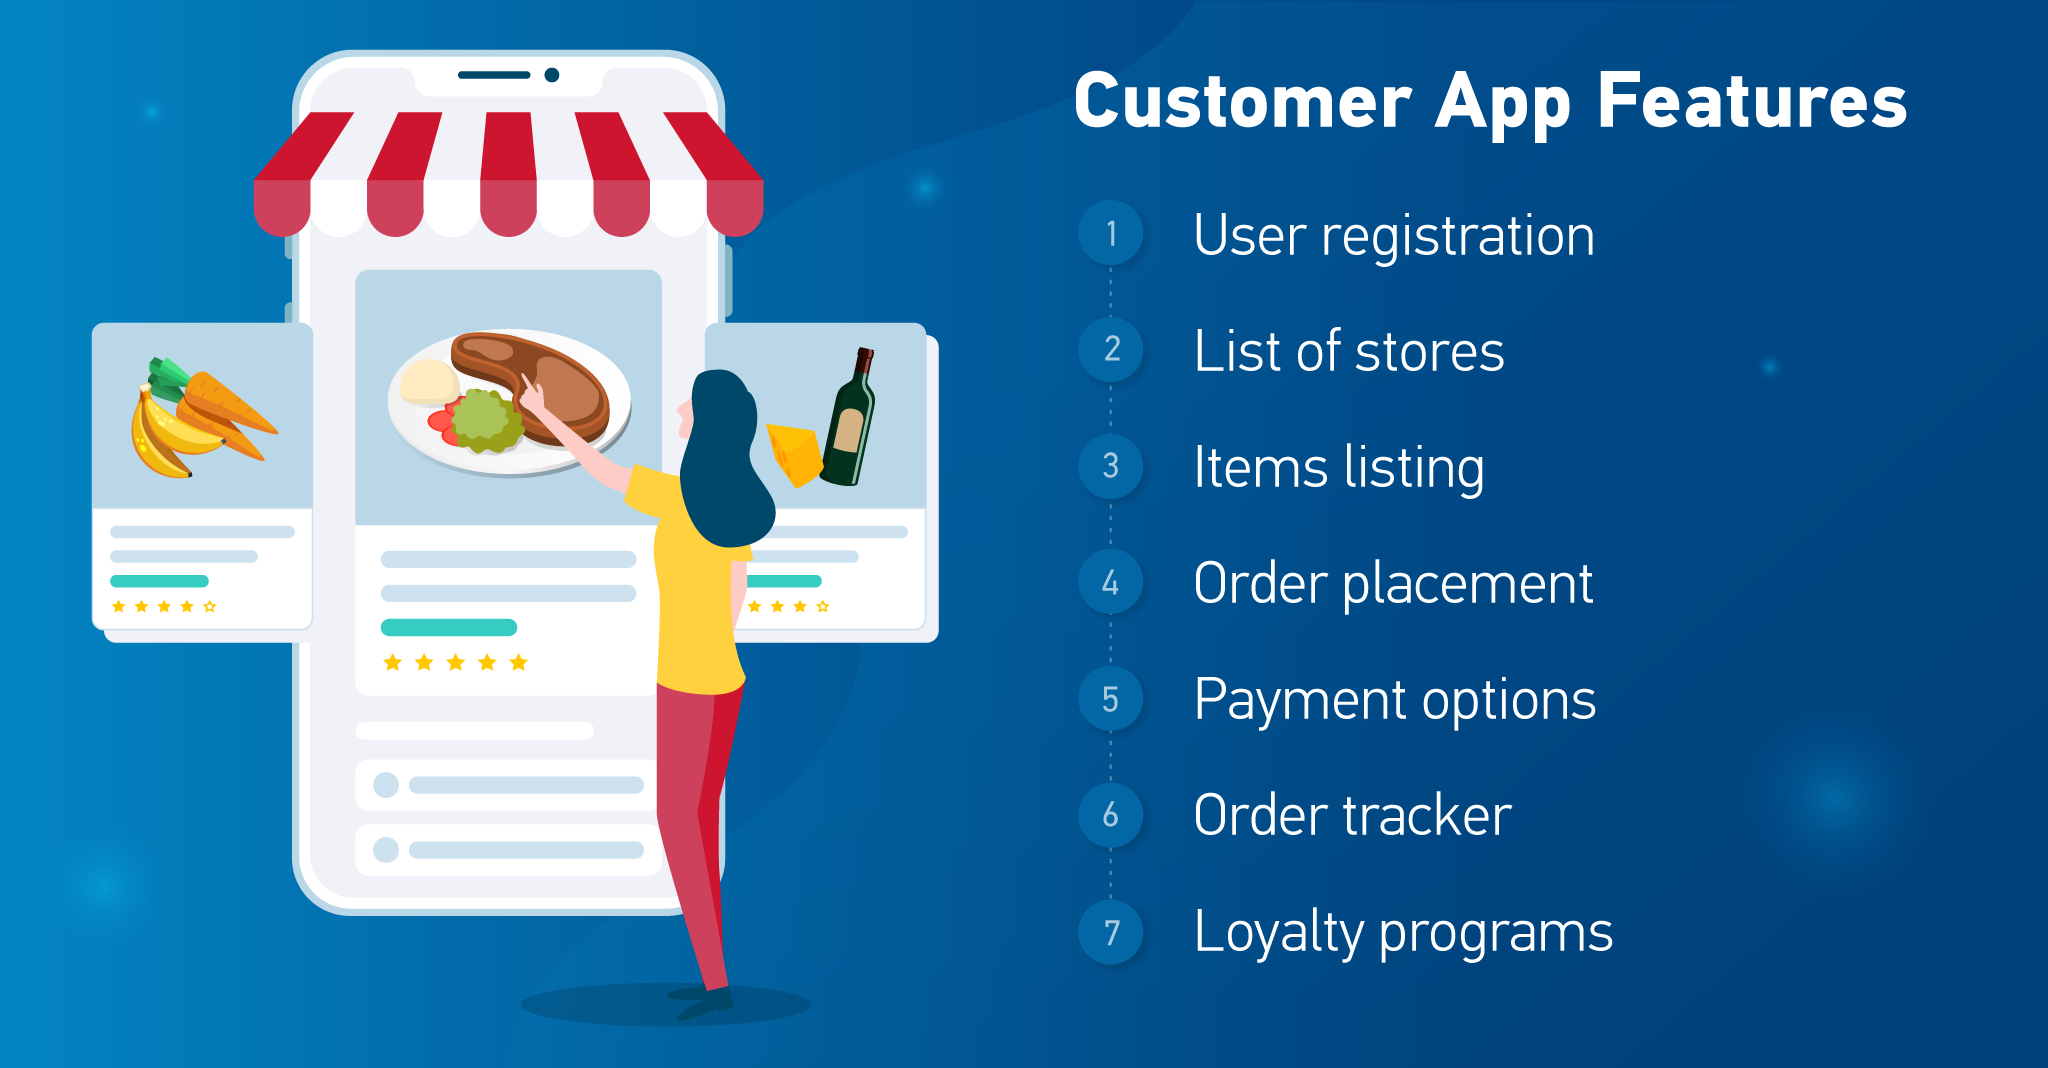 Customer app features for grocery delivery